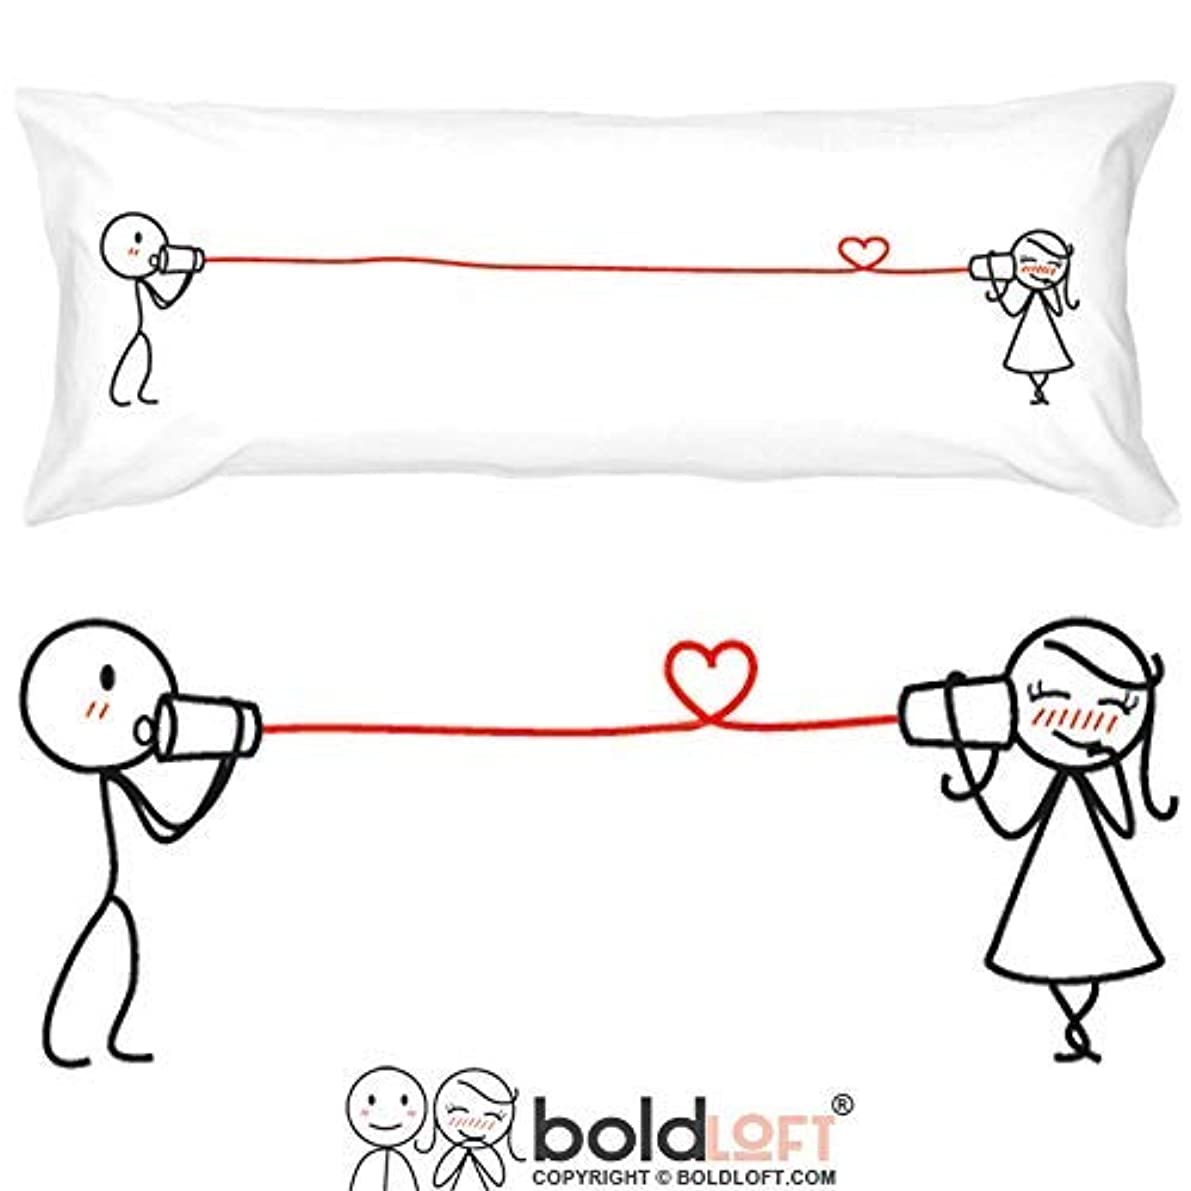 BoldLoft Say I Love You Body Pillowcase-Romantic Valentines Gifts for Couples,Cute Birthday Gifts for Him & Her,His and Hers Gifts for Couples,Romantic